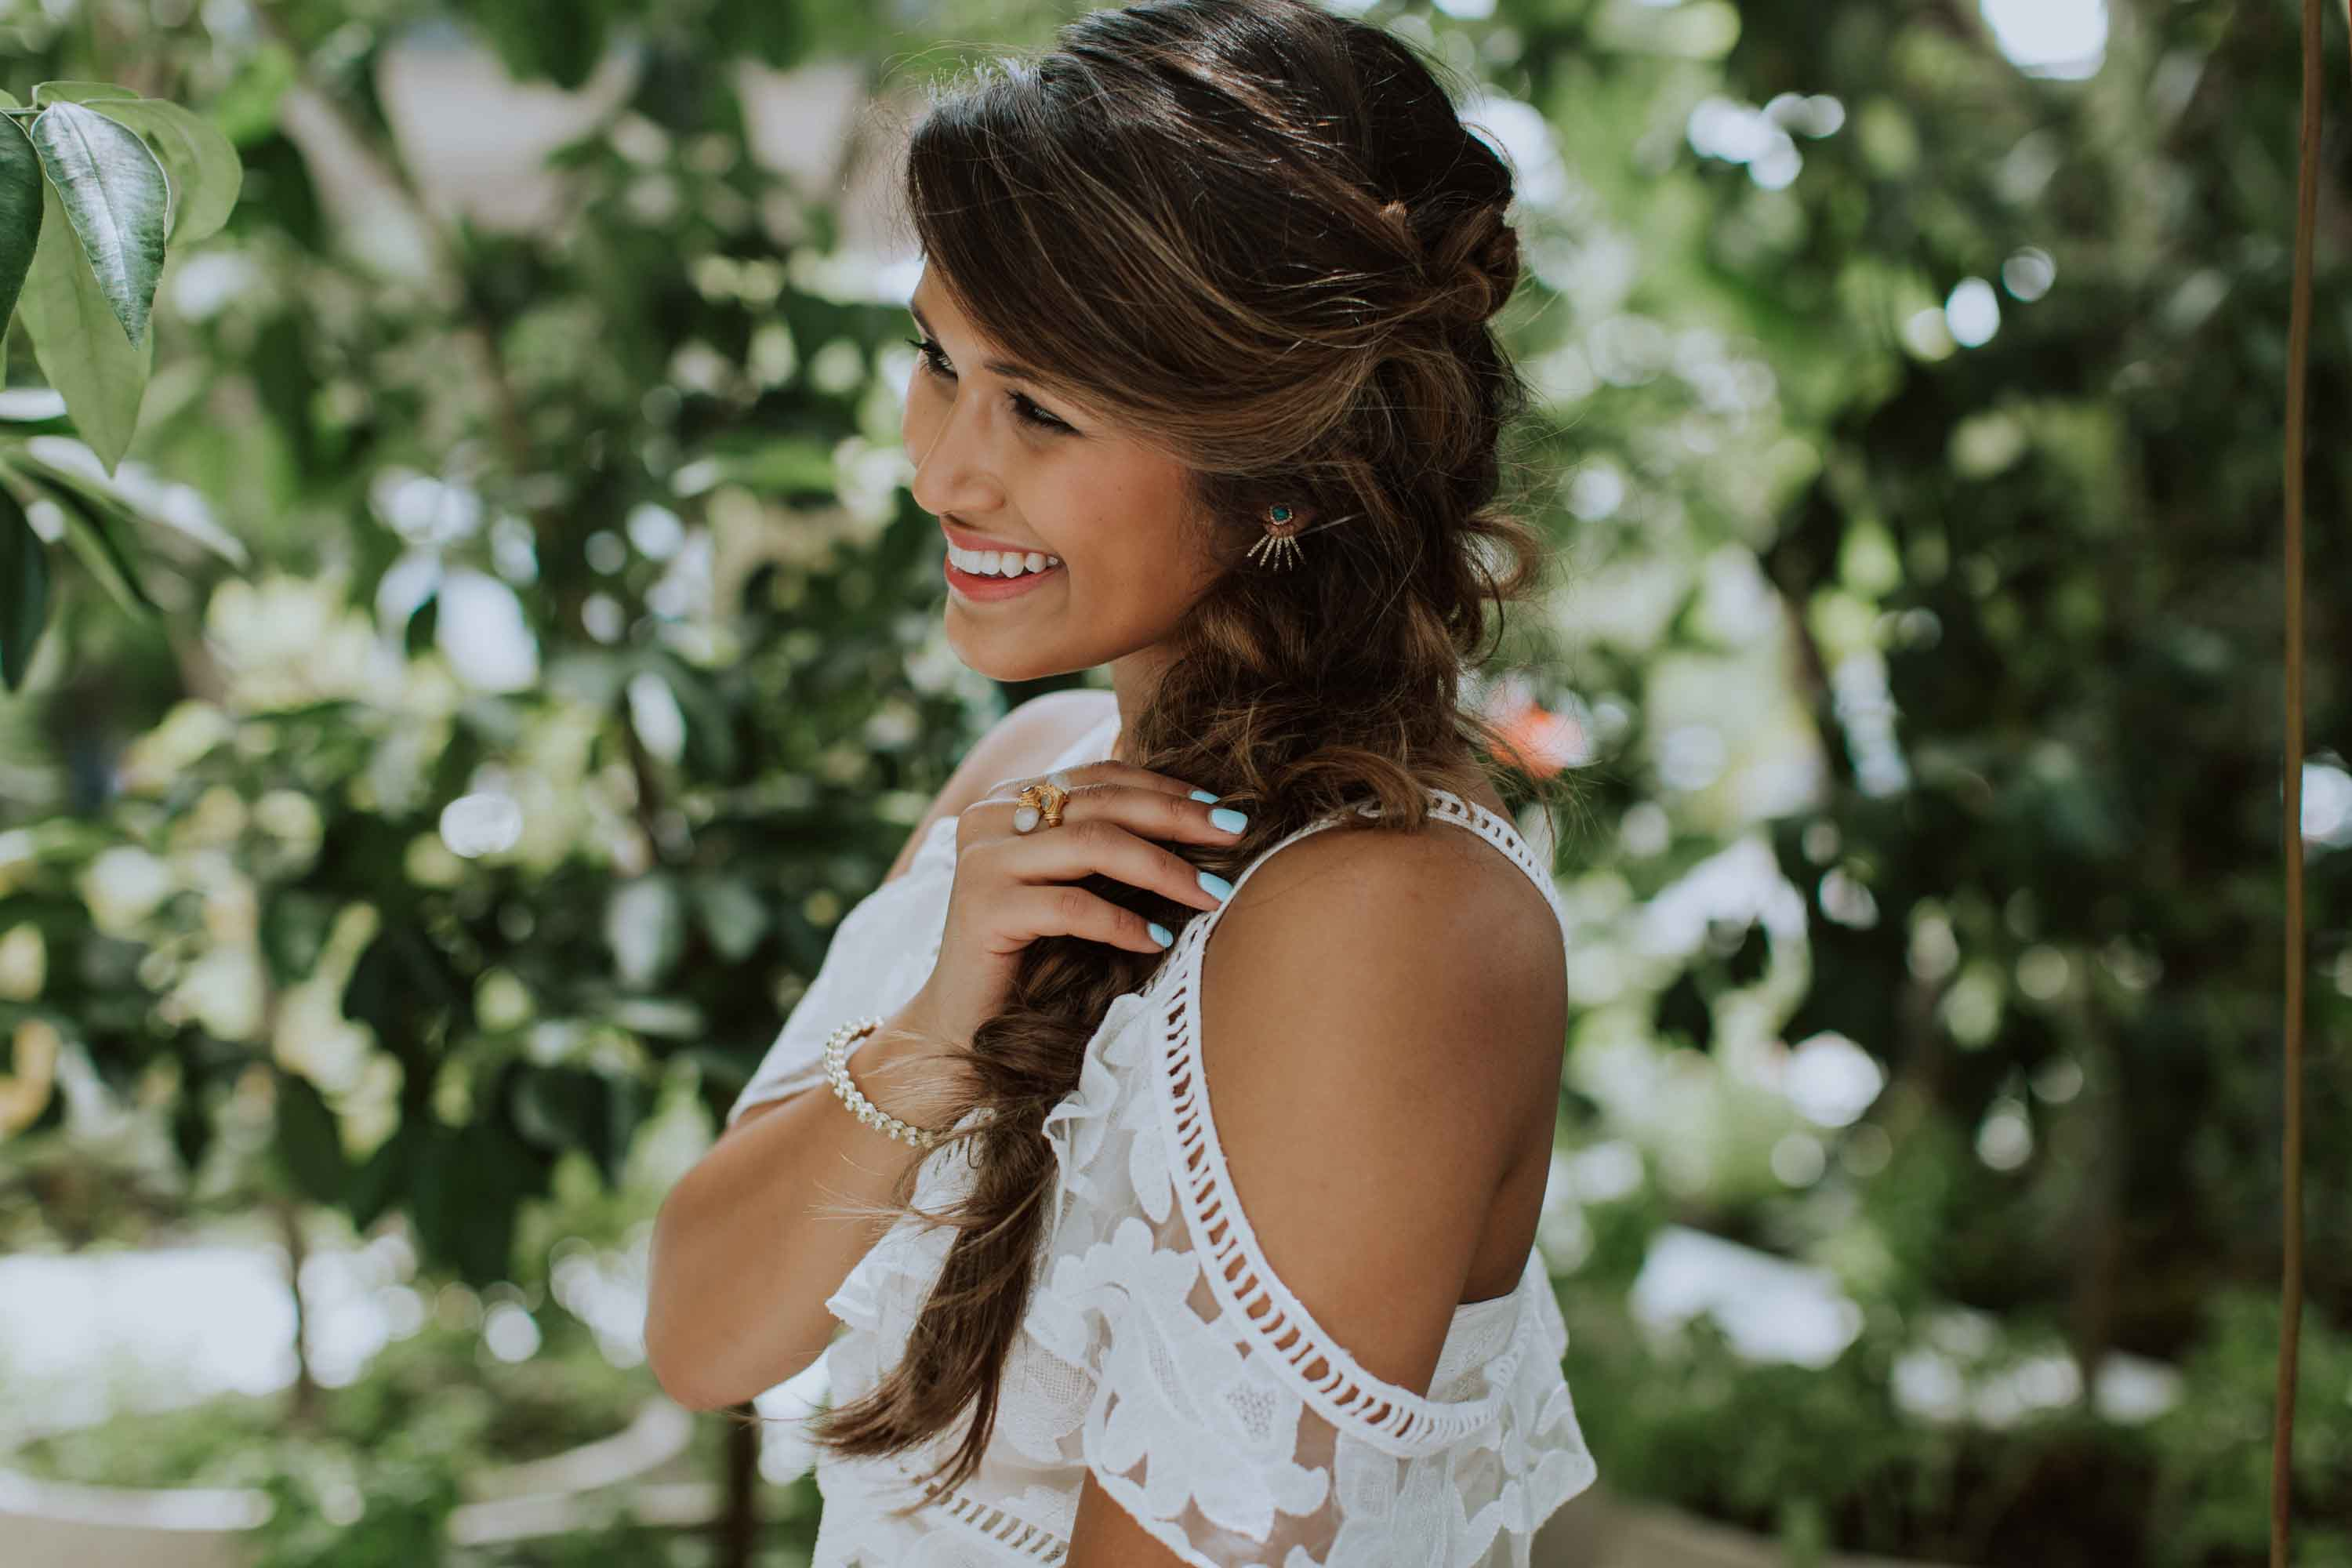 Hairstyles for thick wavy hair: All Things Hair - IMAGE - wavy braid side